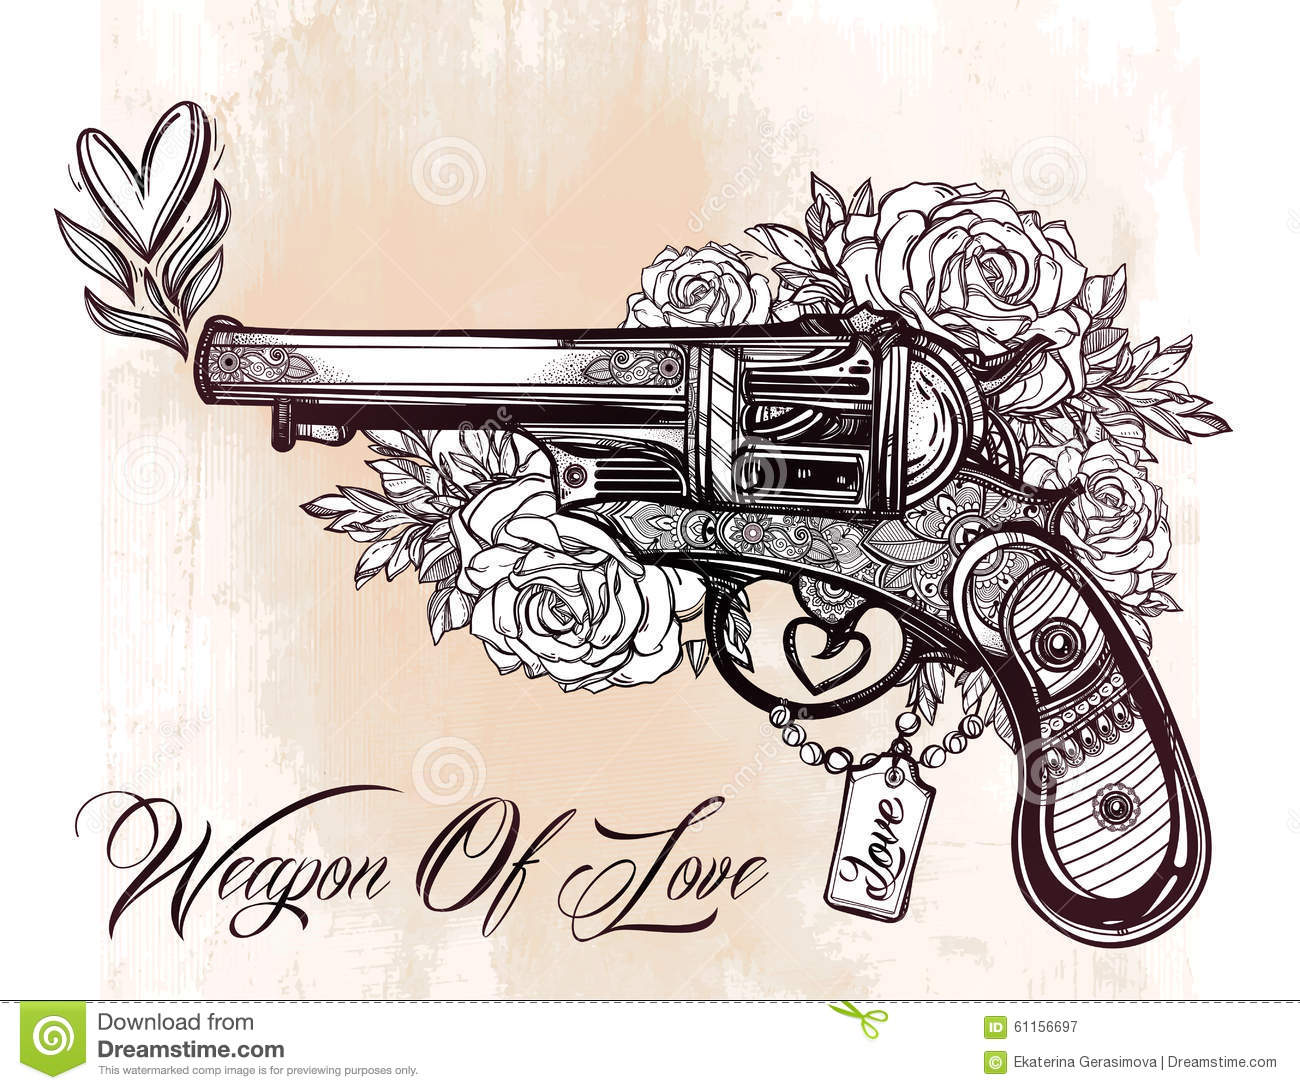 Vintage ornate pistol illustration stock vector image for Tattoo gun prices